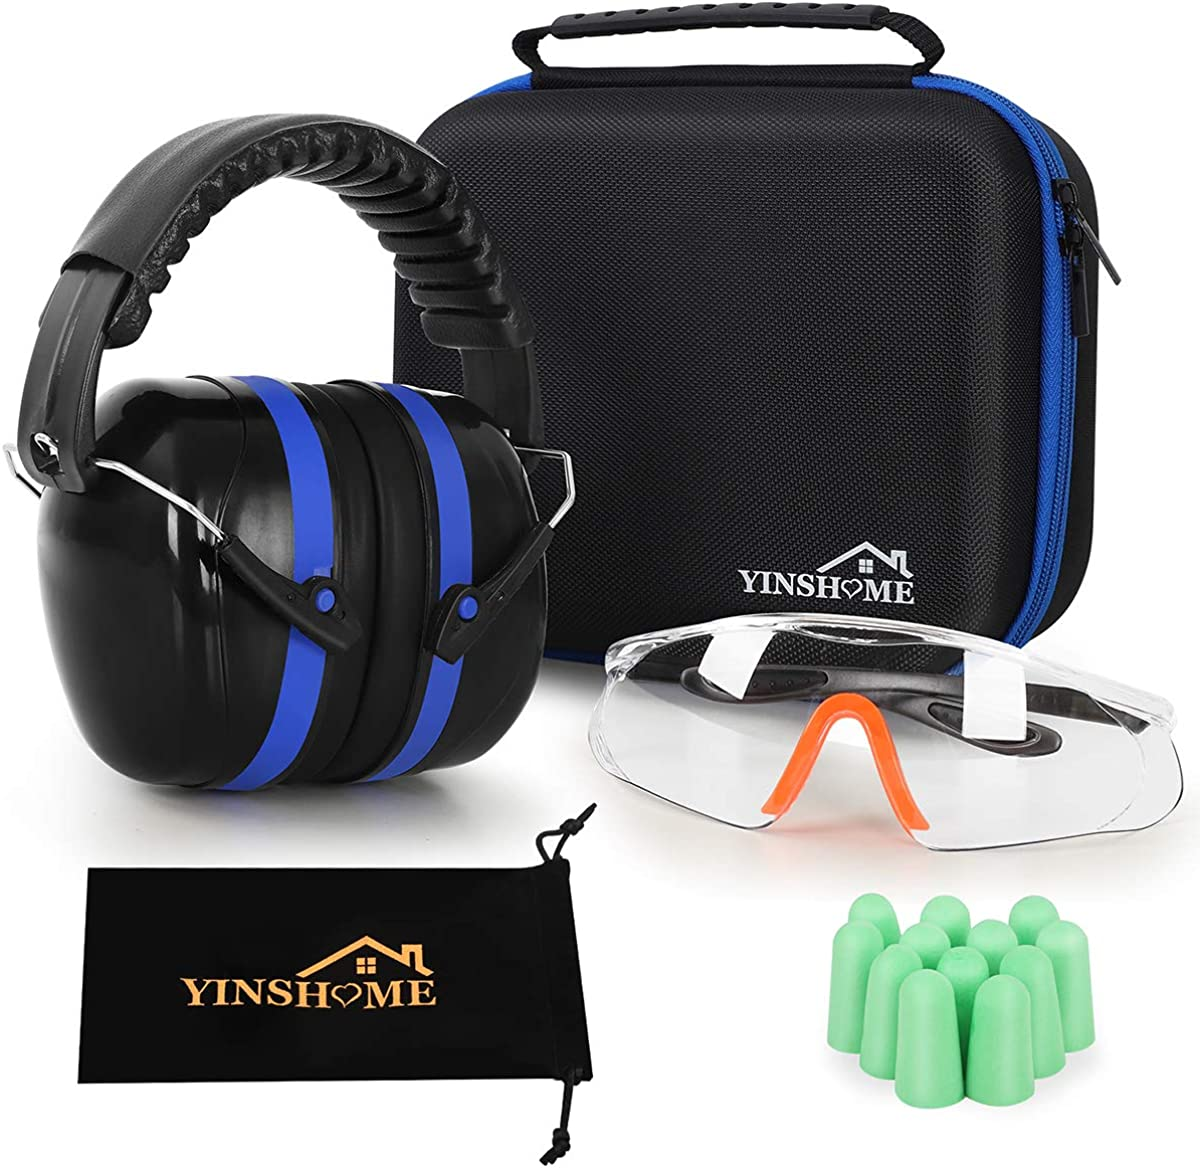 YINSHOME Shooting Ear Protection Earmuffs, Gun Safety Glasses, Earplugs, Protective Case